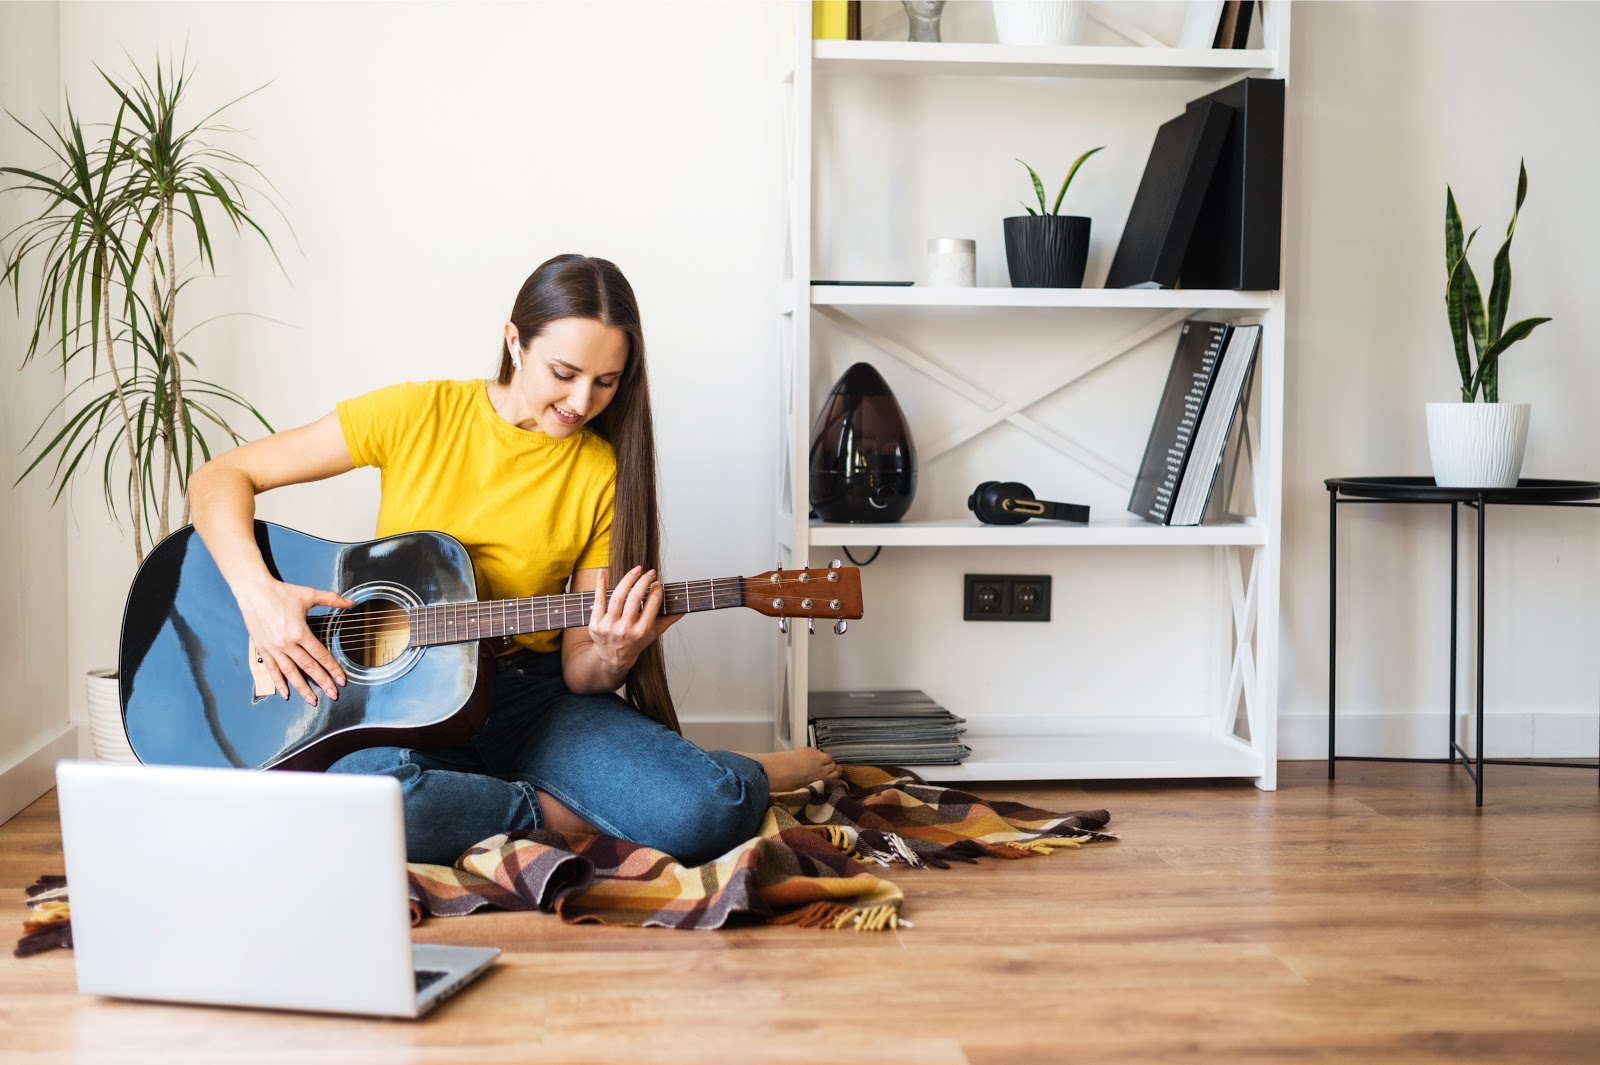 Person learning the guitar as a hobby to help with addiction recovery